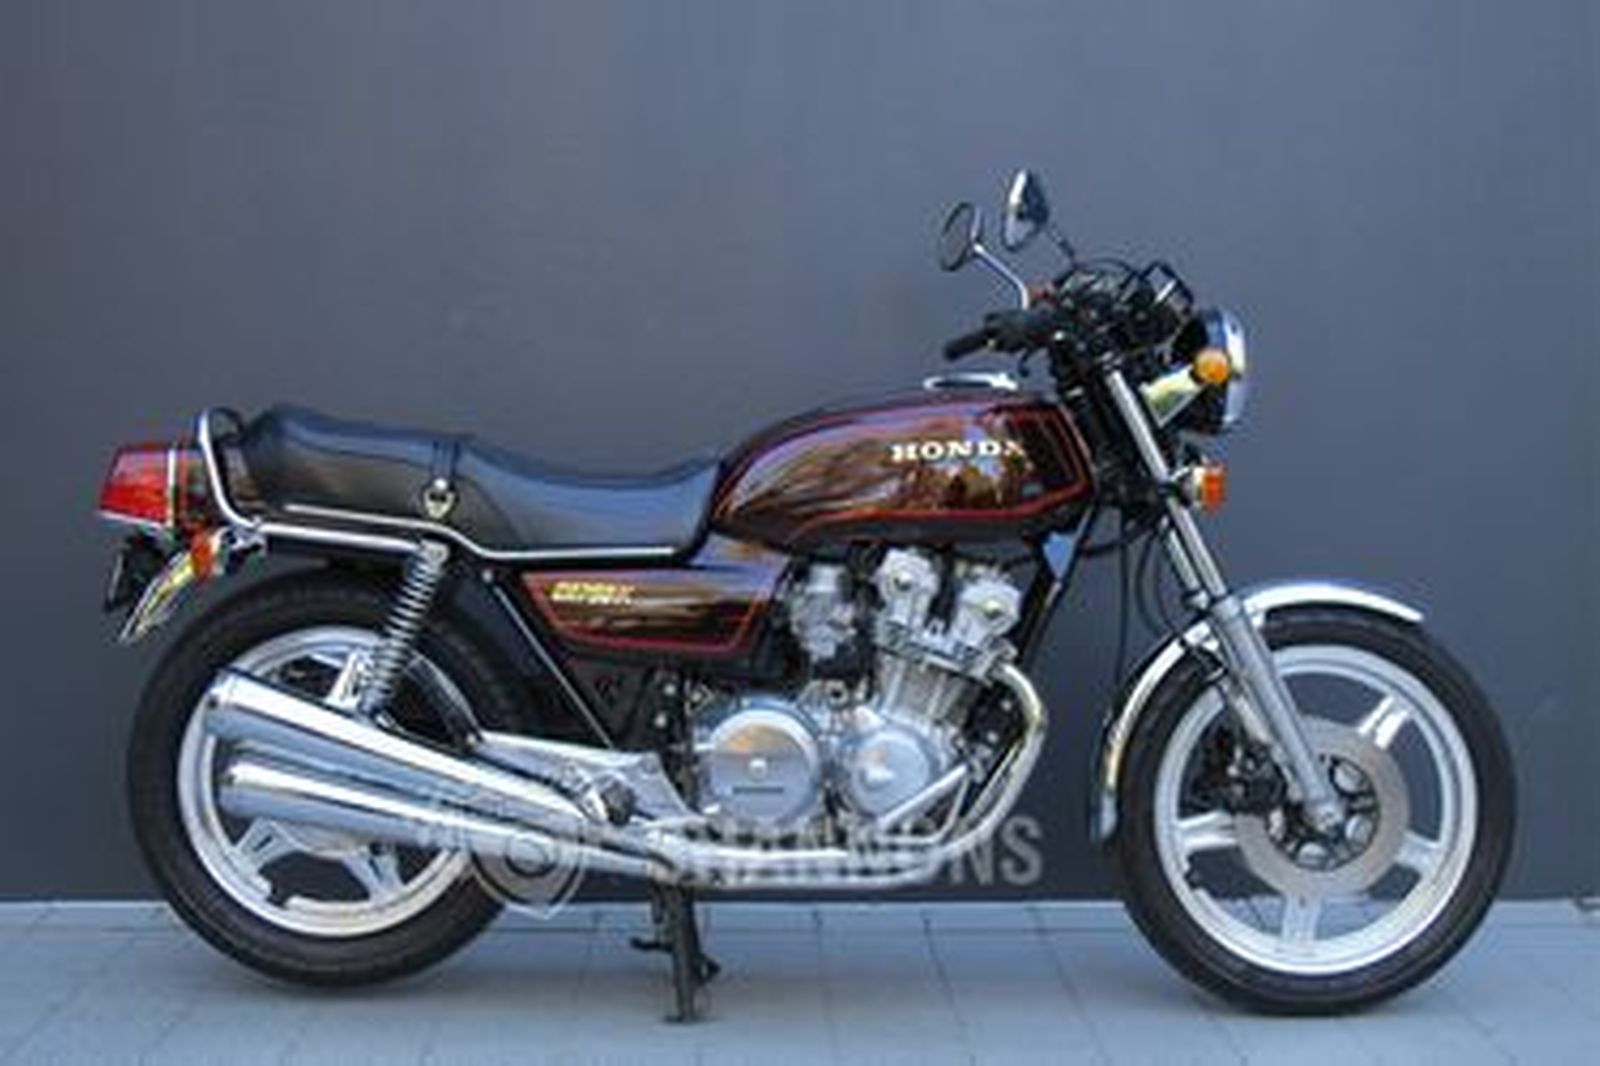 sold honda cb750k 750cc motorcycle auctions lot y shannons. Black Bedroom Furniture Sets. Home Design Ideas